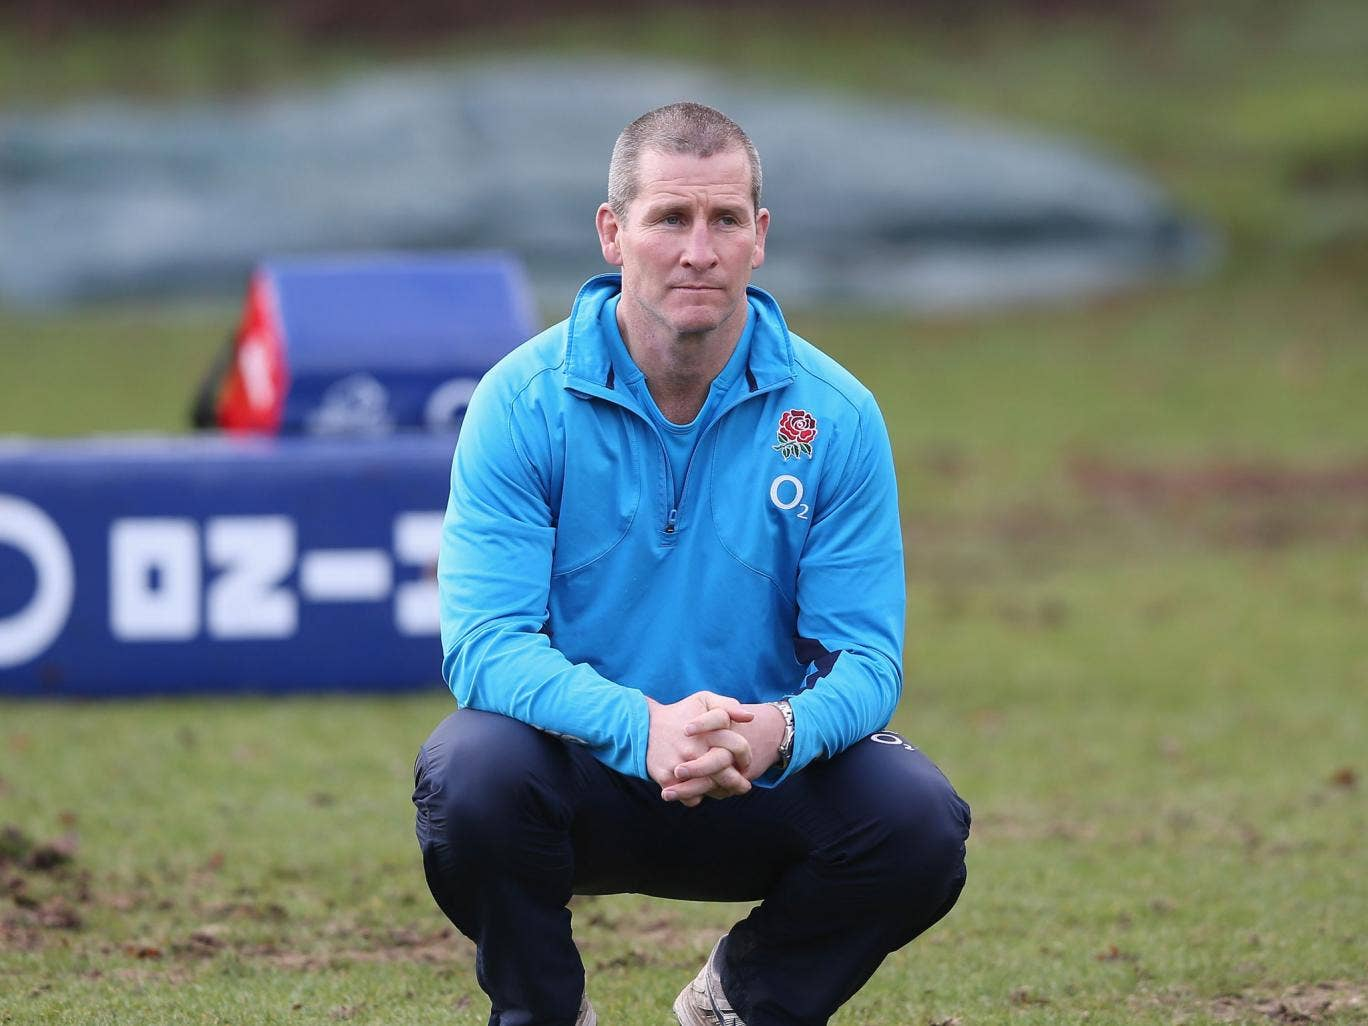 Stuart Lancaster: 'There are no international warm-up games'